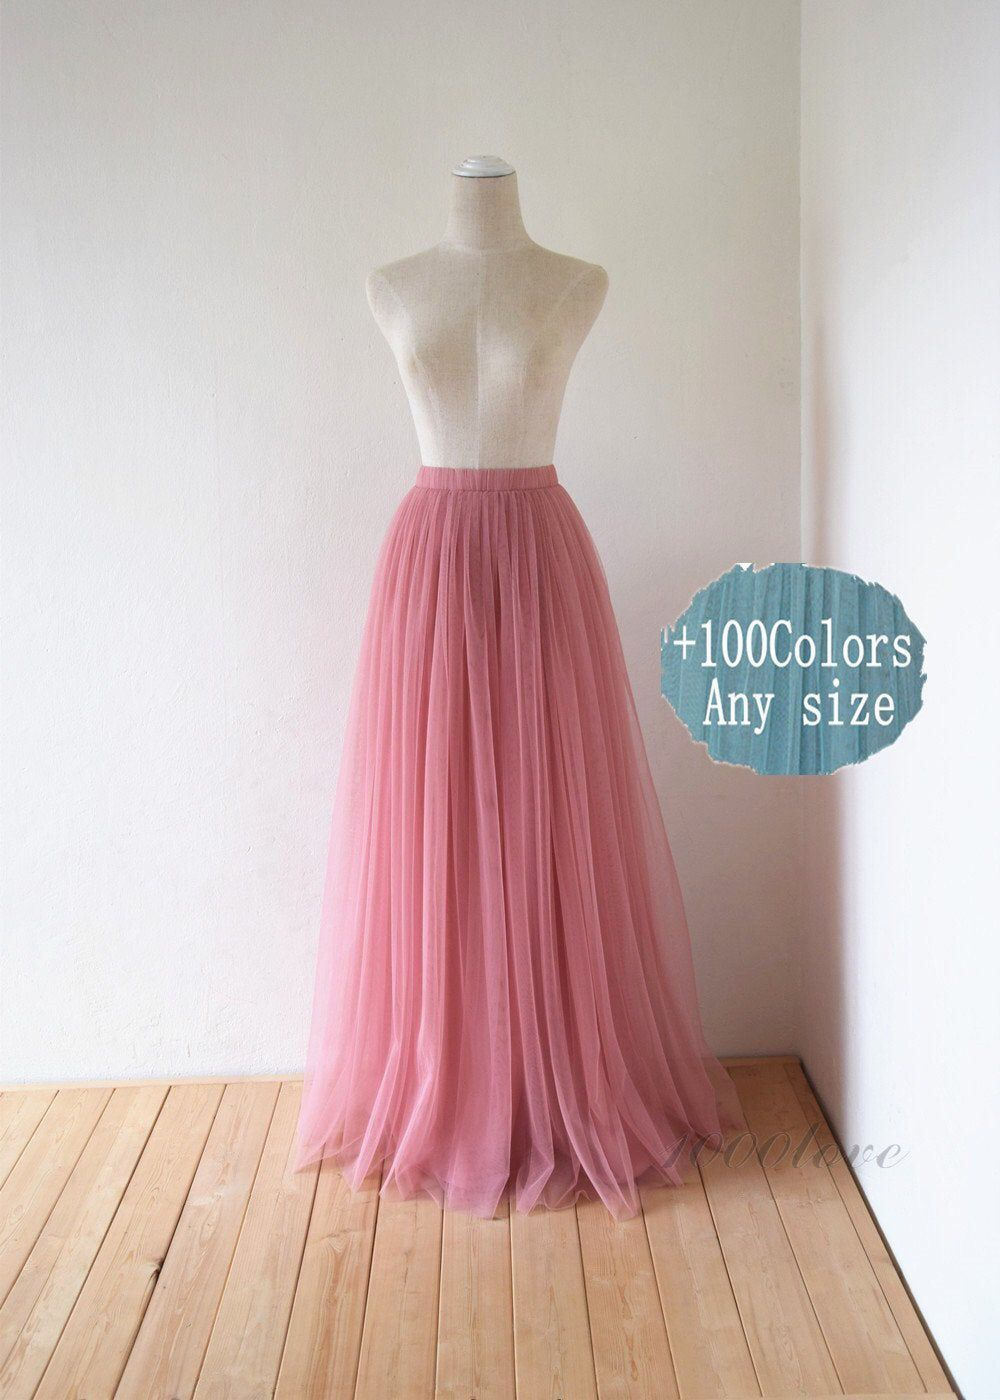 Photo of Dusty rose maxi tulle skirt,bridesmaid dress wedding dress photo shoot skirt,any size any length tulle skirt